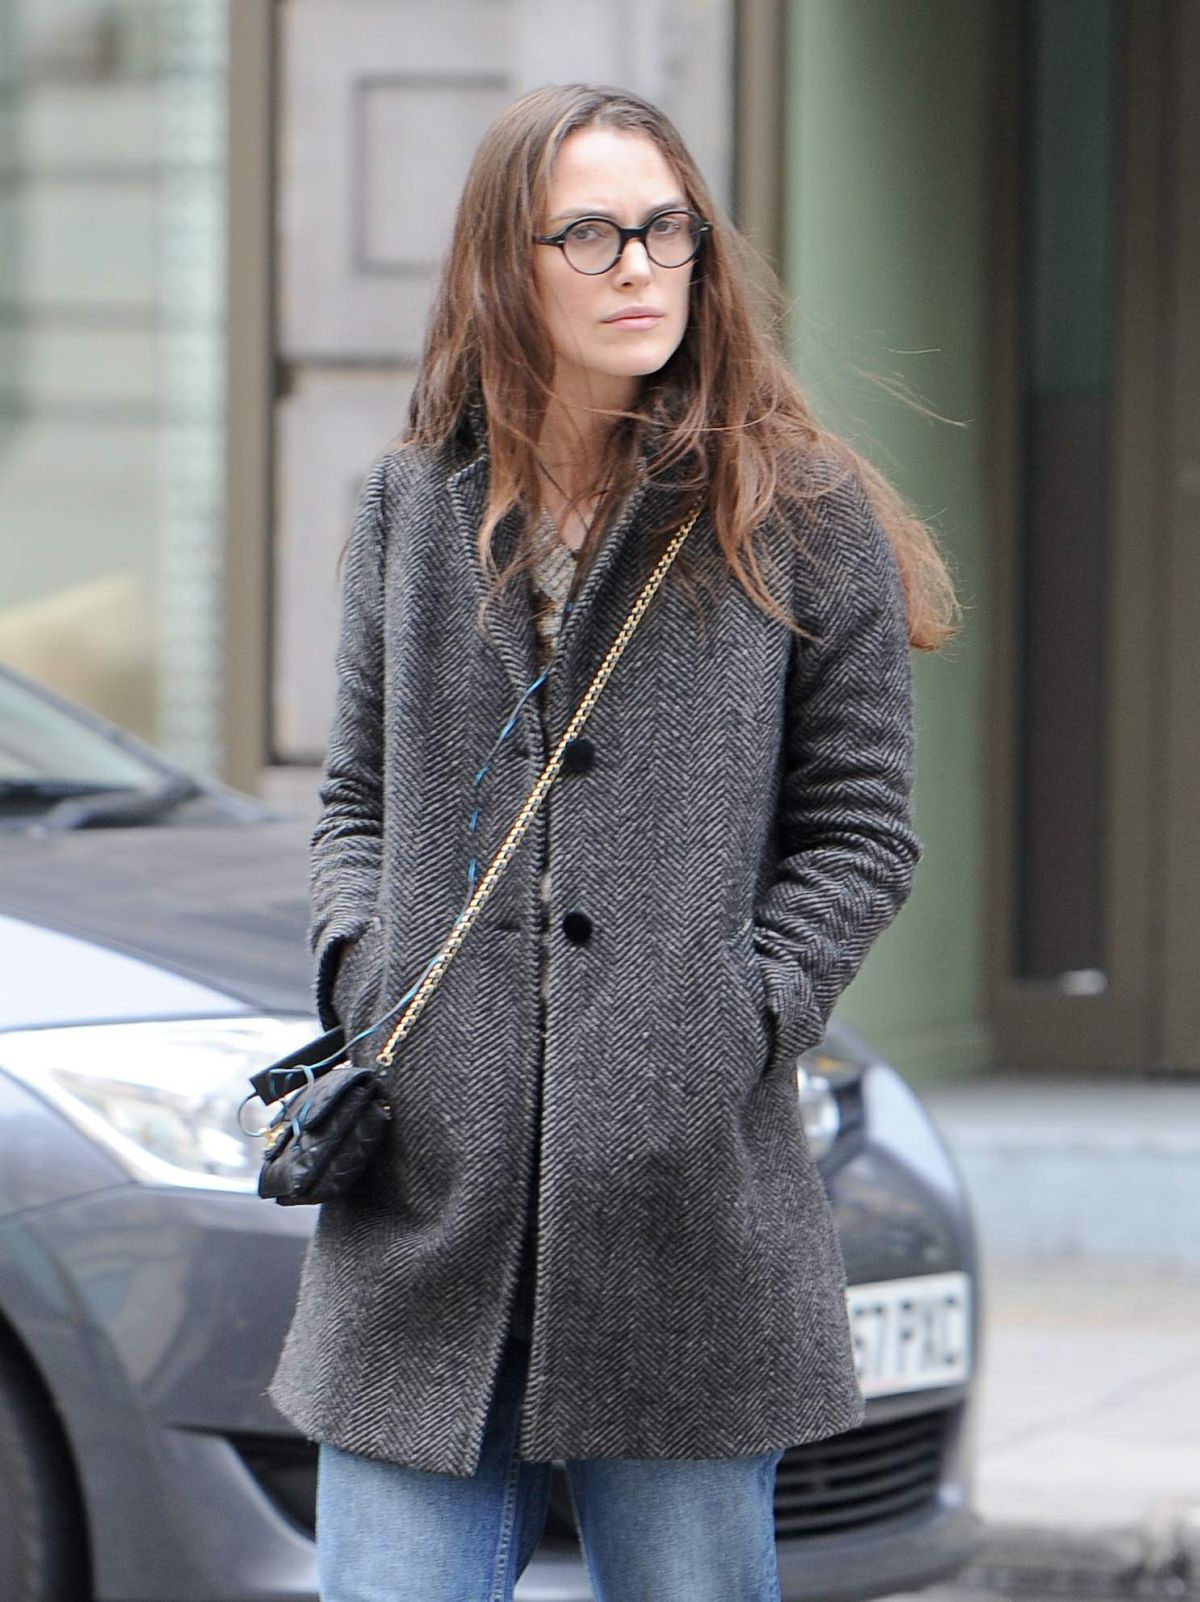 KEIRA KNIGHTLEY Out in London 03/23/2017 - HawtCelebs Keira Knightley